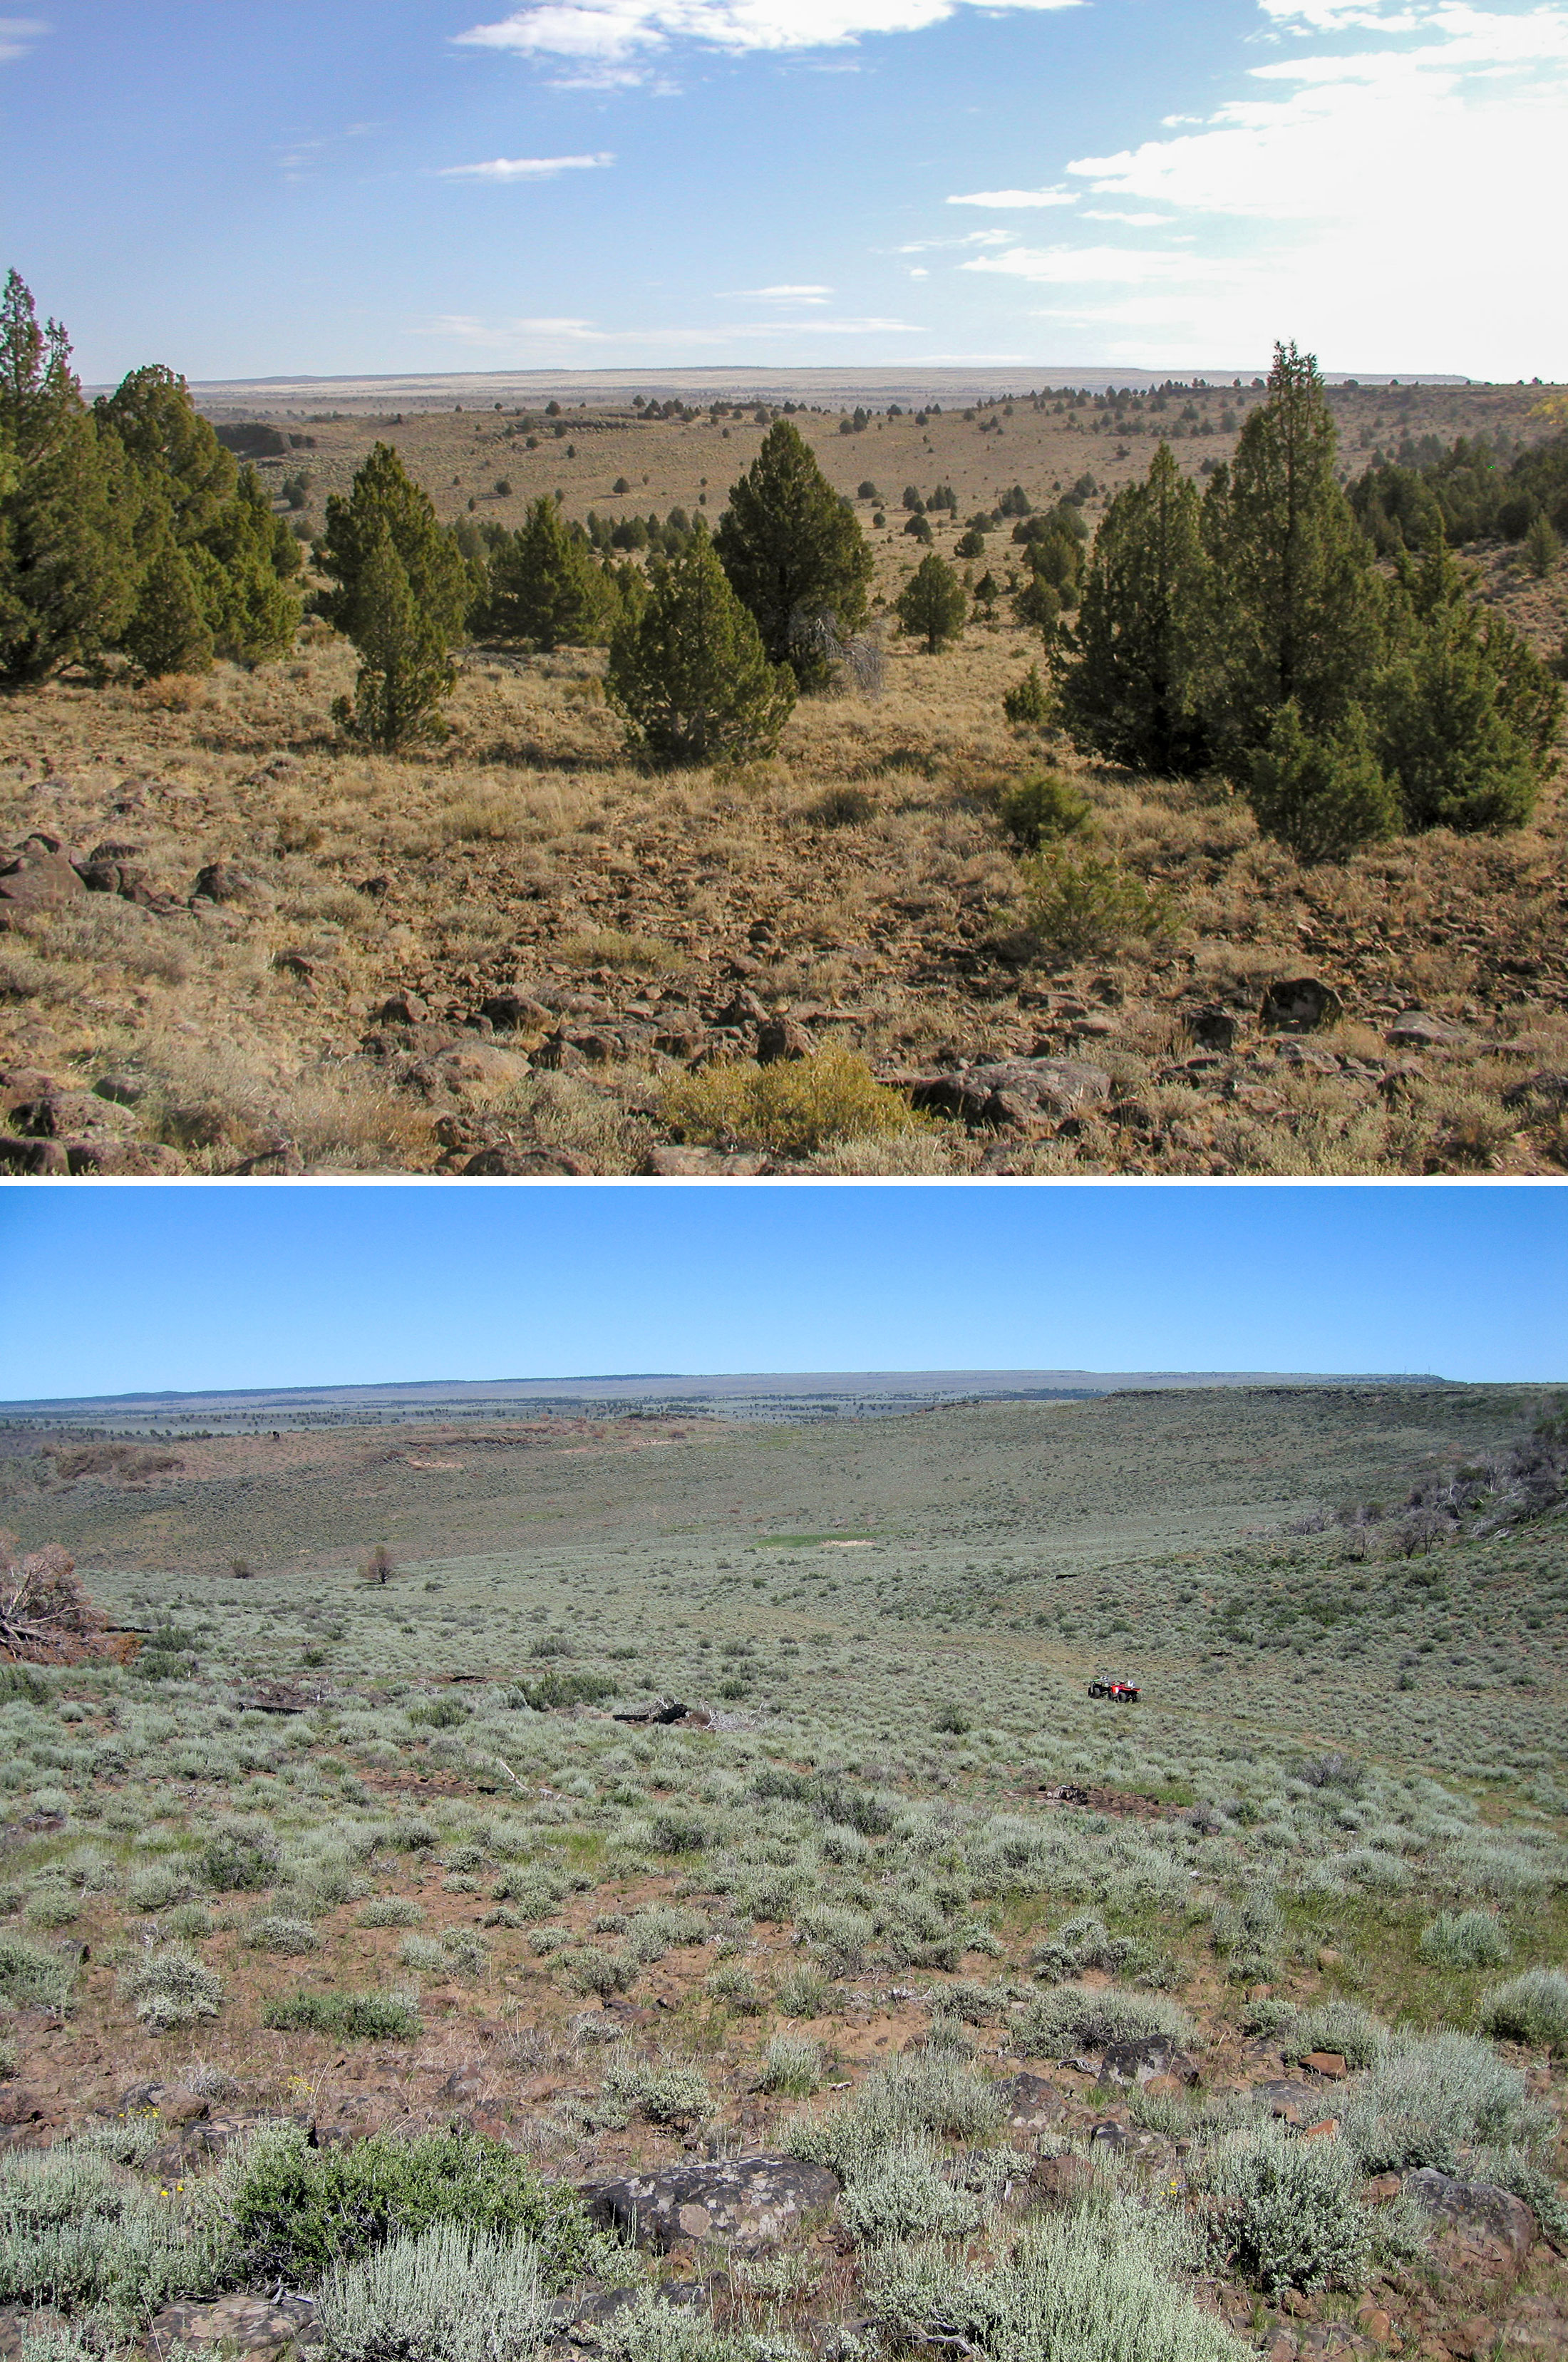 Before and after conifer removal in the treatment area in southern Oregon. Photos: Todd Forbes/BLM